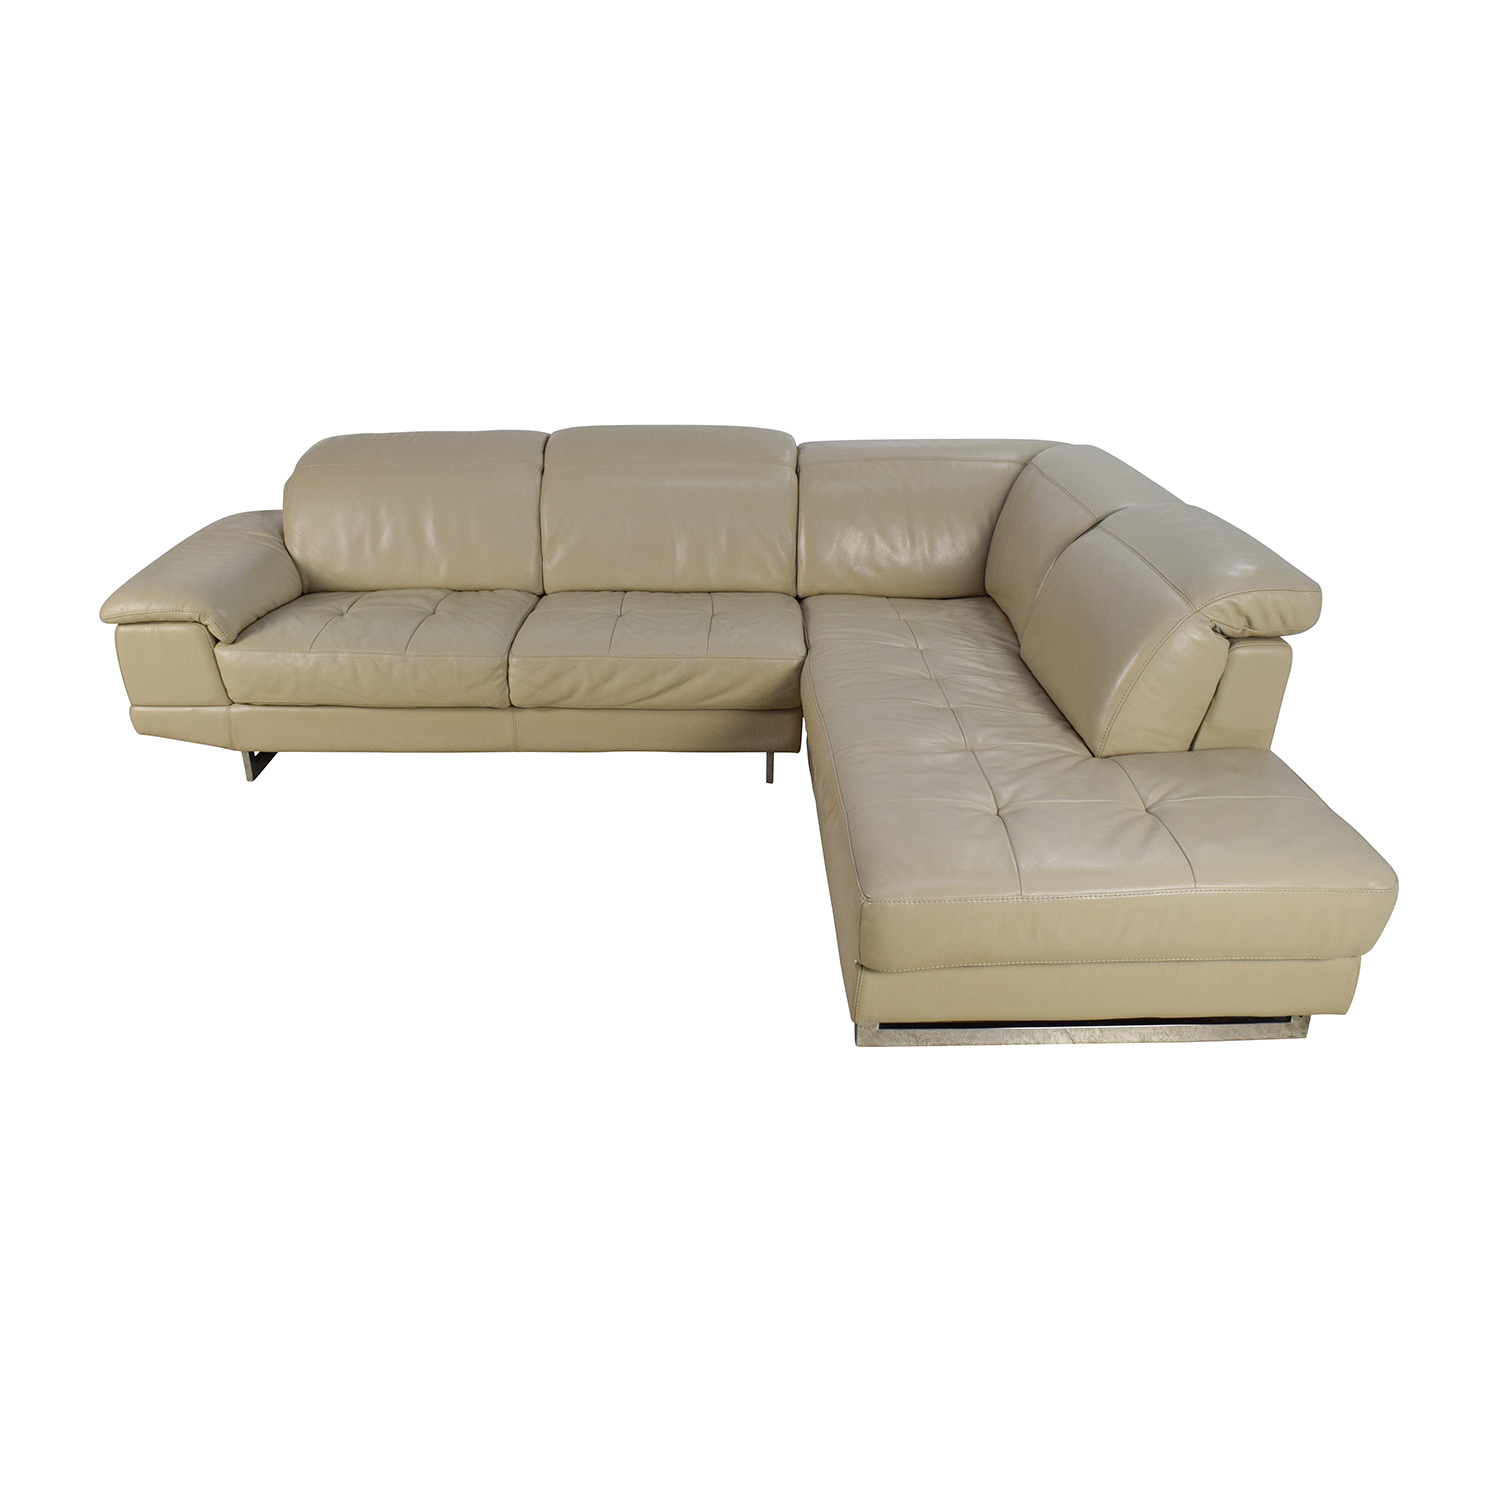 Super 83 Off Beige Italian Leather Couch With Adjustable Headrests Sofas Ibusinesslaw Wood Chair Design Ideas Ibusinesslaworg